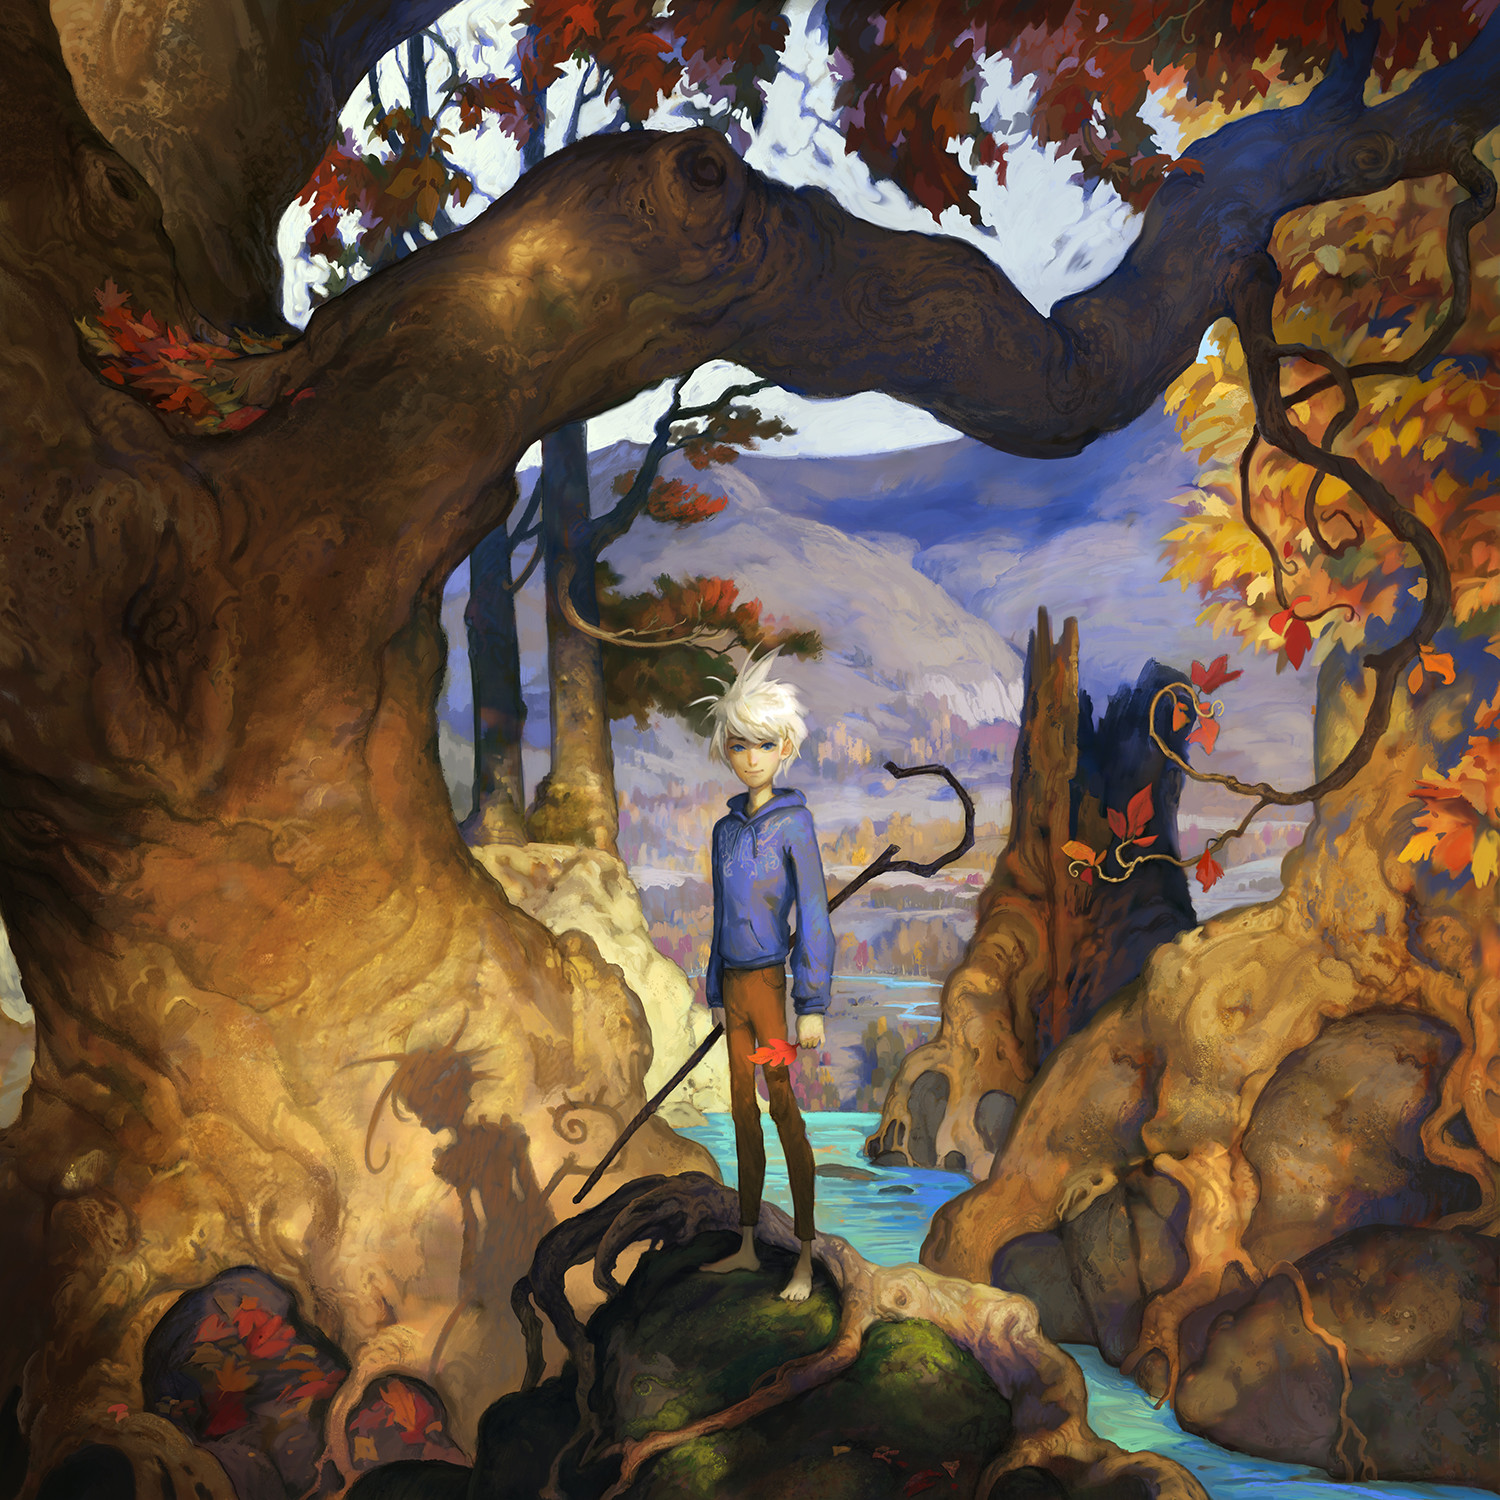 Jack Frost - Picture Book - The Guardians of Childhood